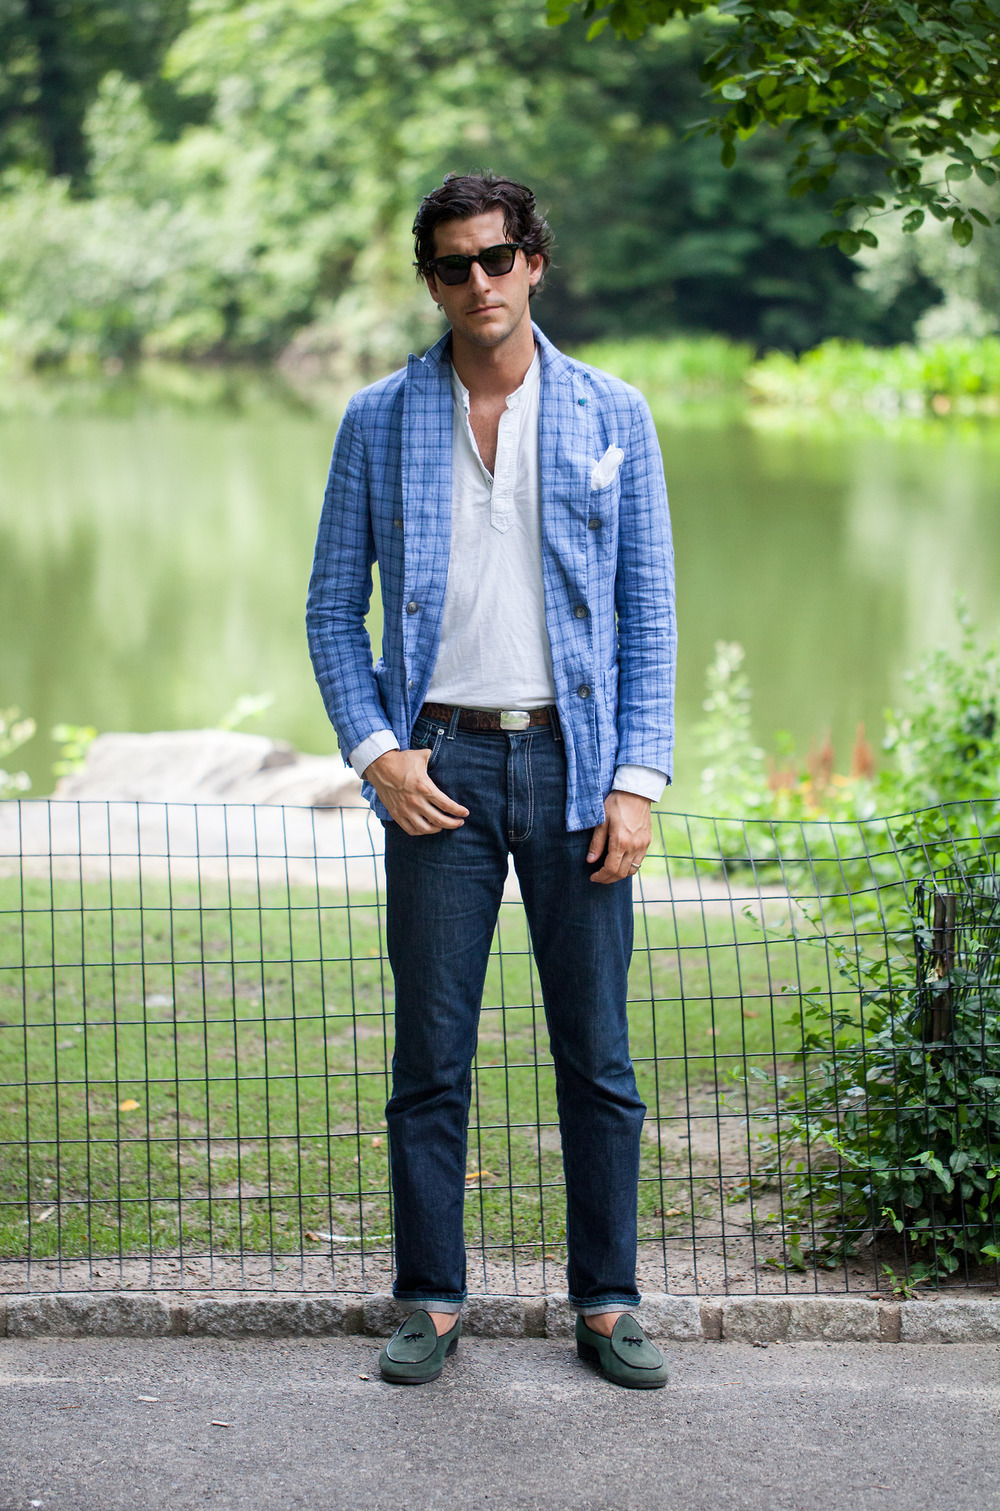 Antonio-Ciongoli-blue-blazer-dark-denim-lookbook-menswear.jpg